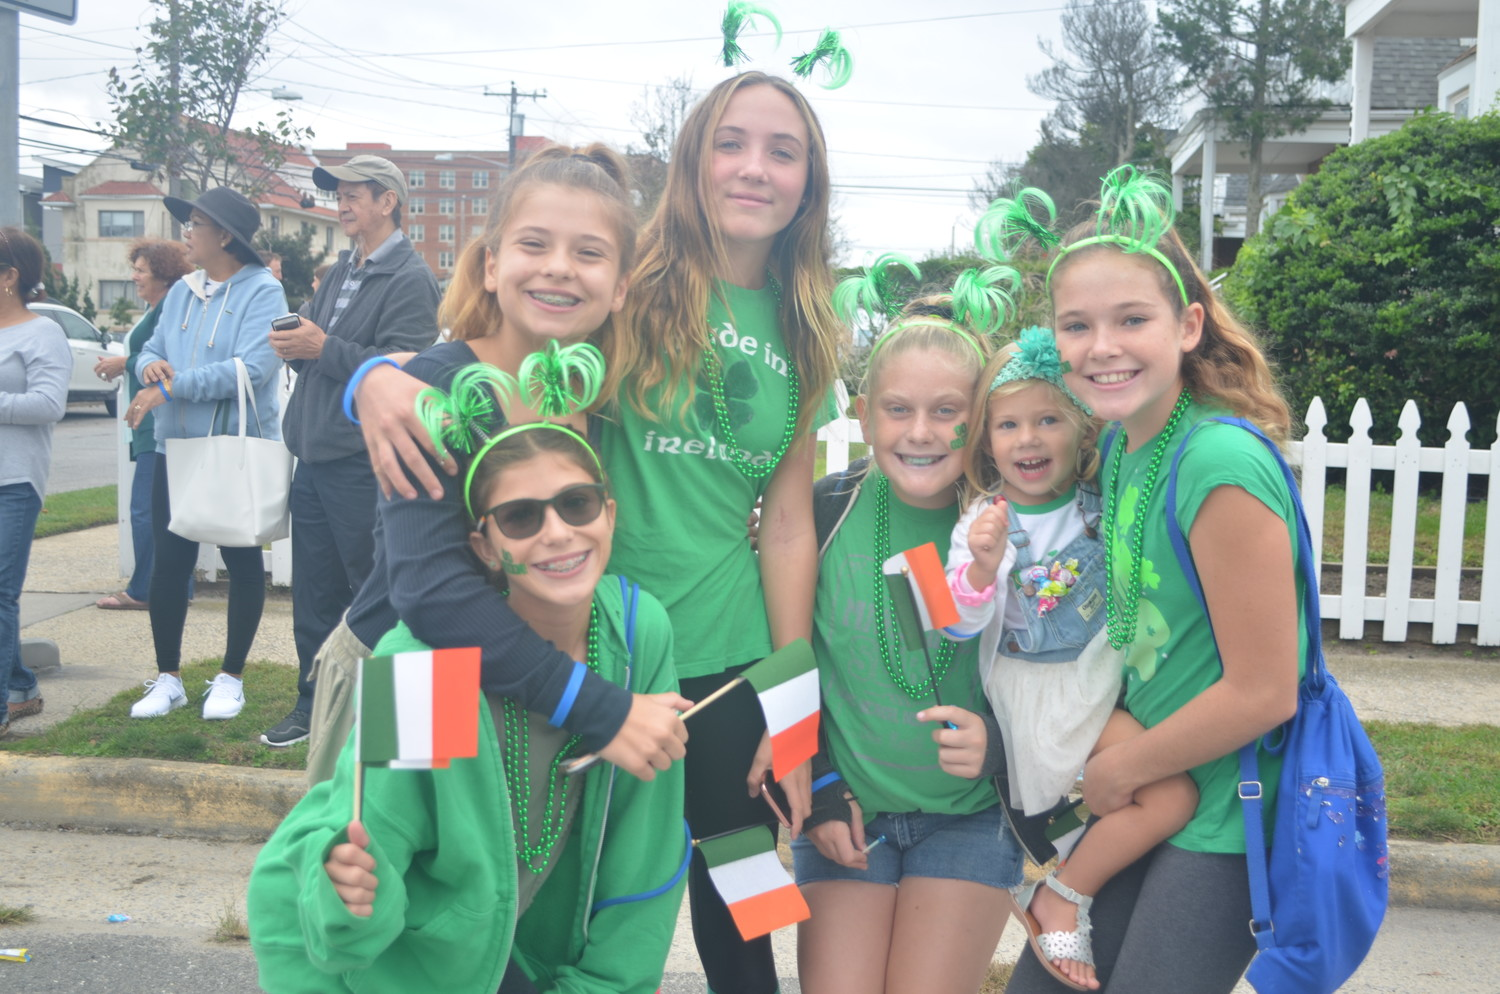 Parade-goers wore festive accessories to celebrate the Irish culture.